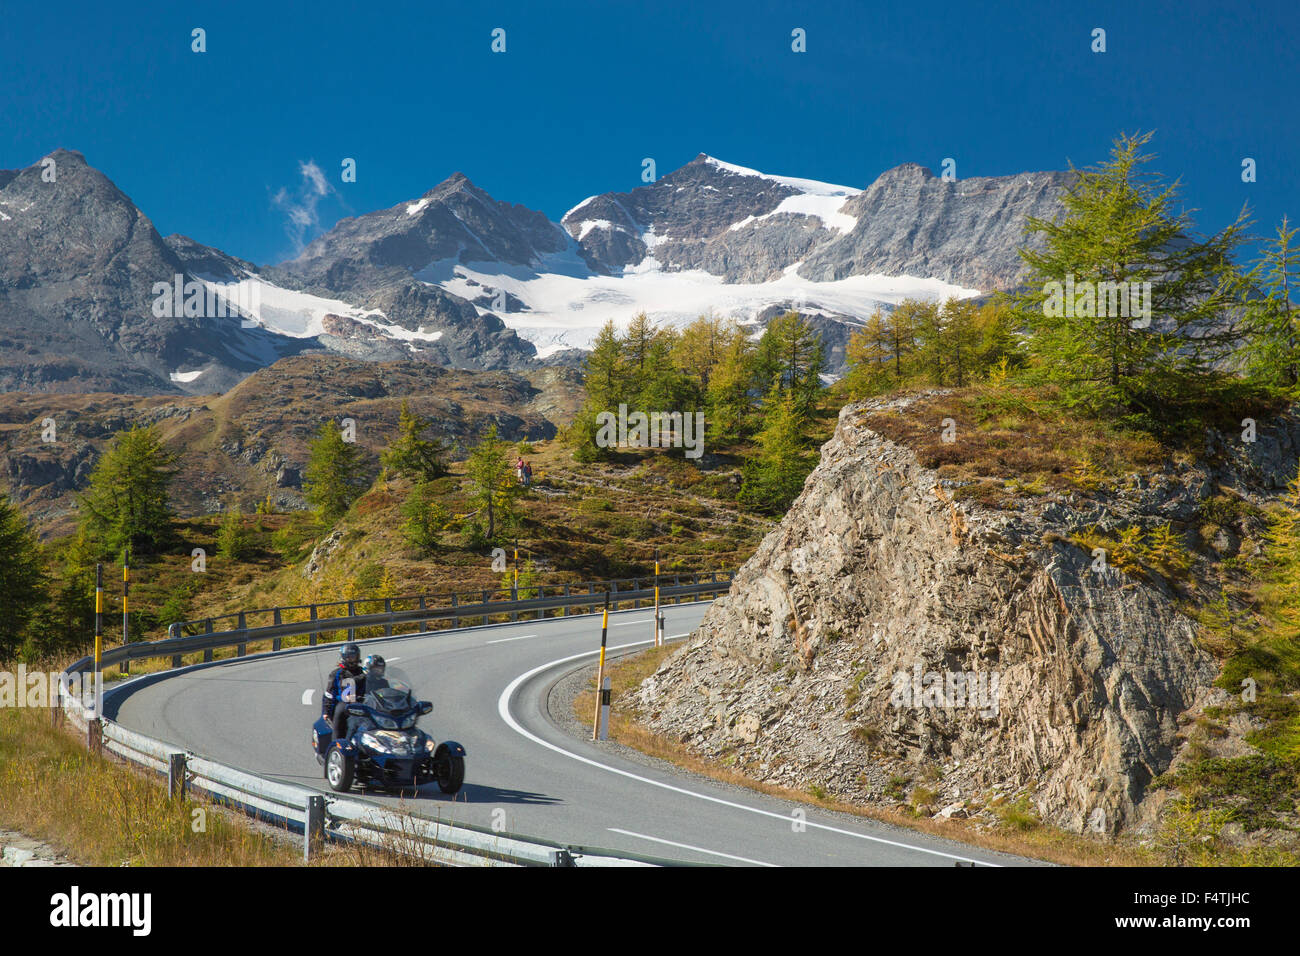 Motorcycle on mountain pass, - Stock Image